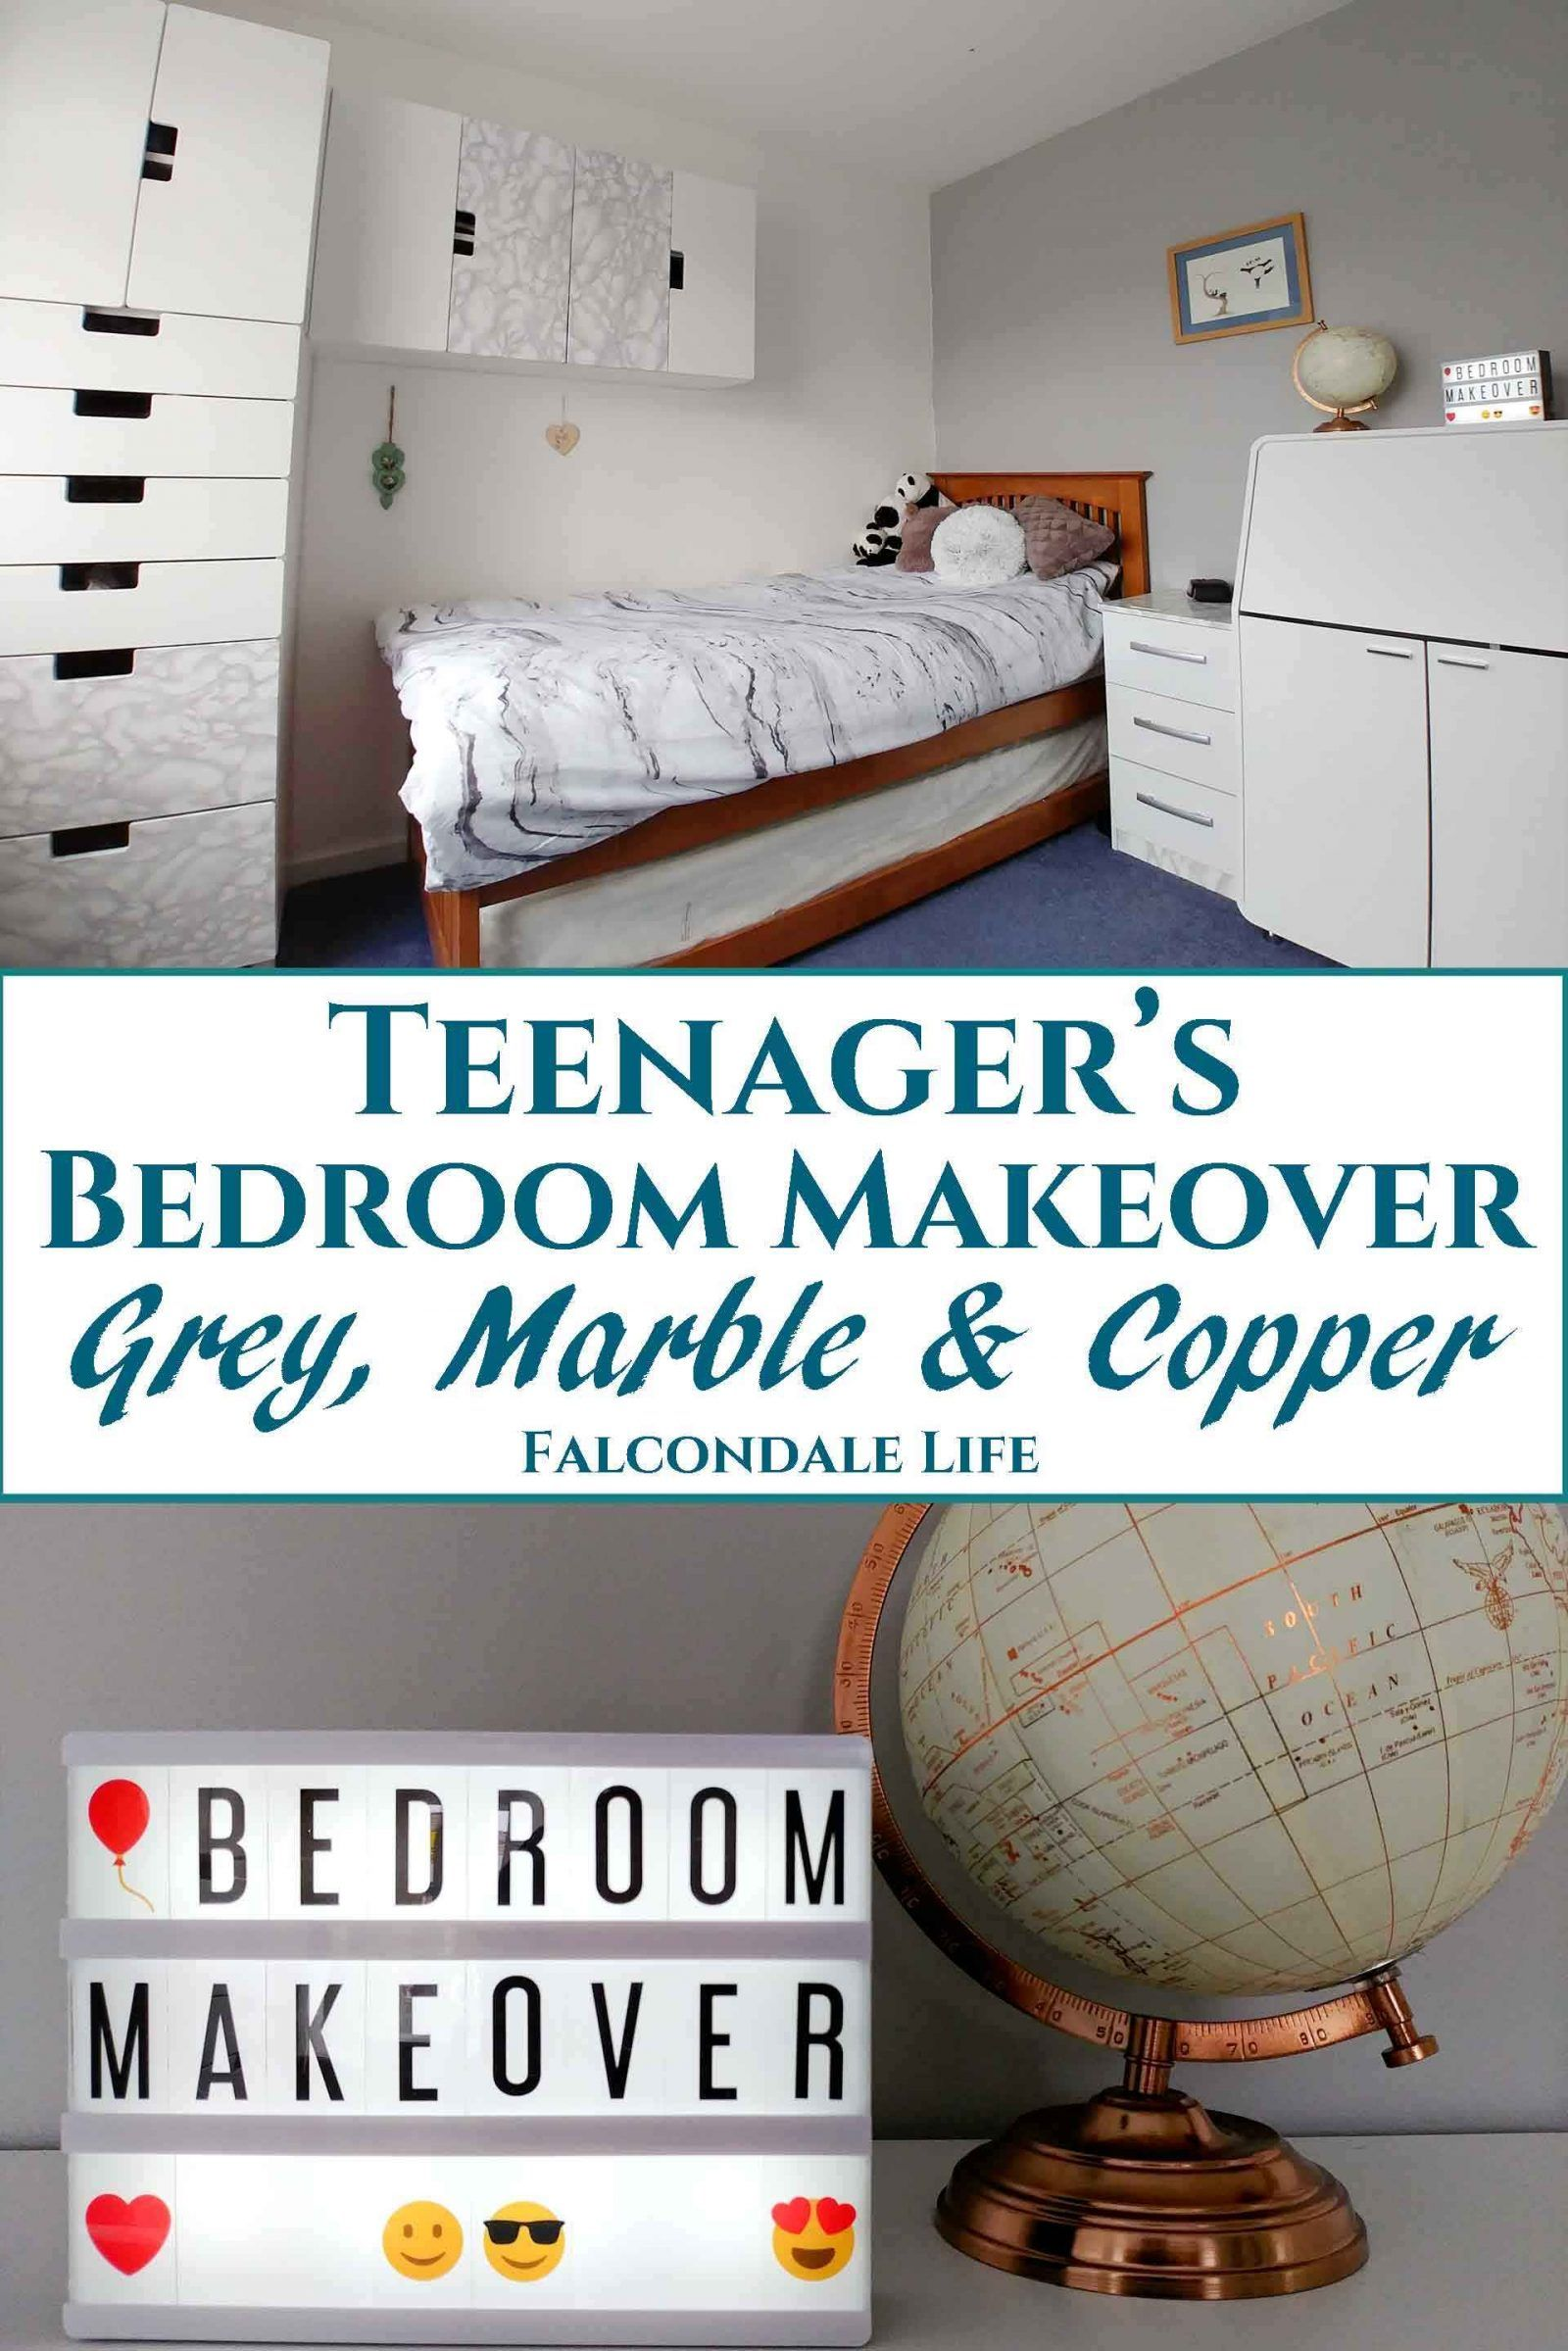 Teenagerus bedroom makeover with grey marble and copper